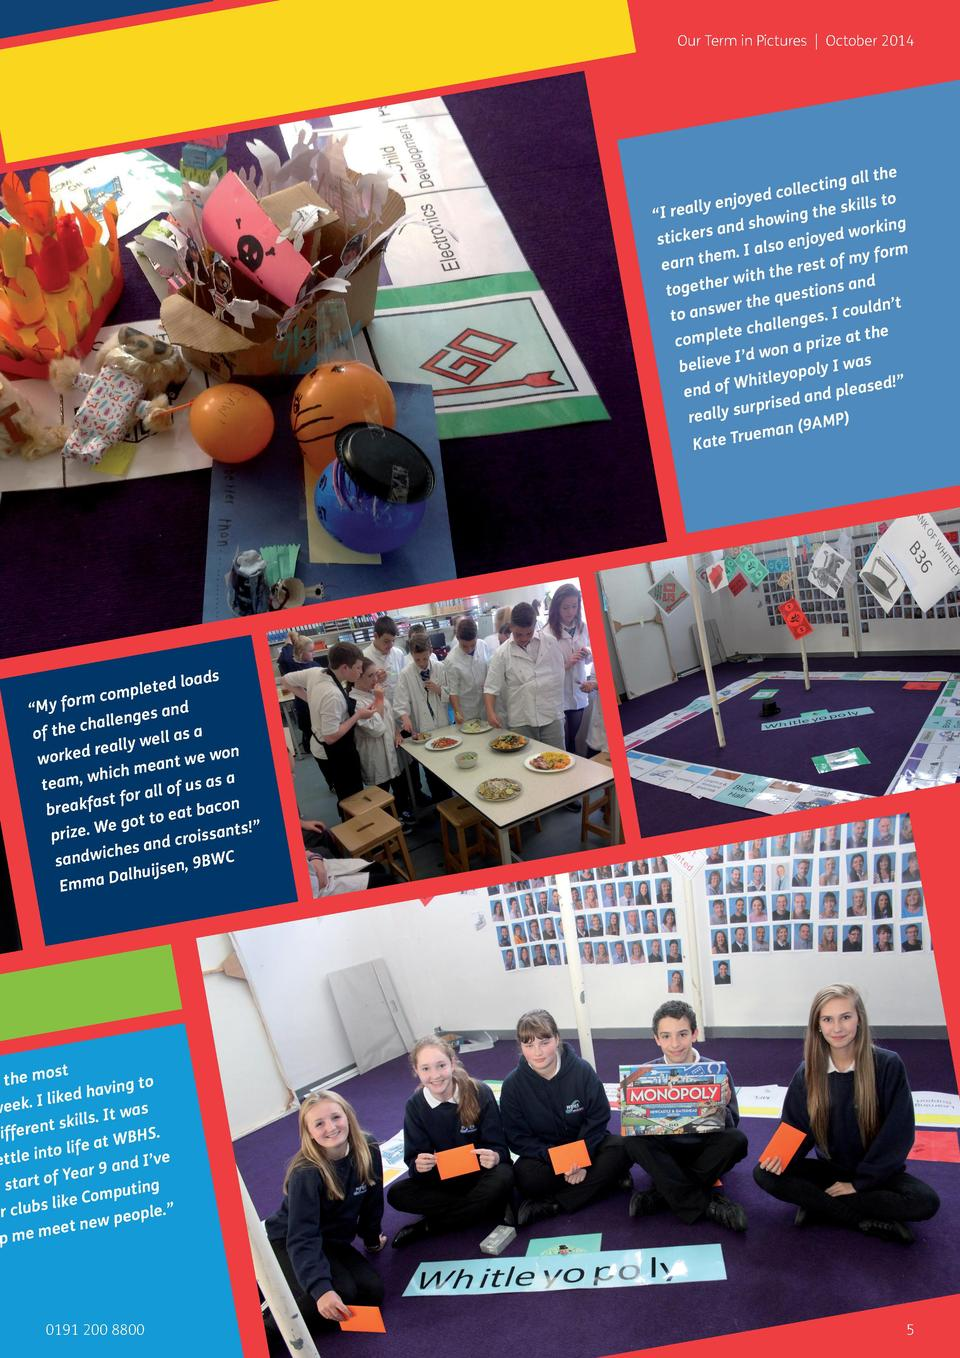 Our Term in Pictures   October 2014  the ing all collect ed o y enjoy skills t    I reall ing the how ing s and s d work s...